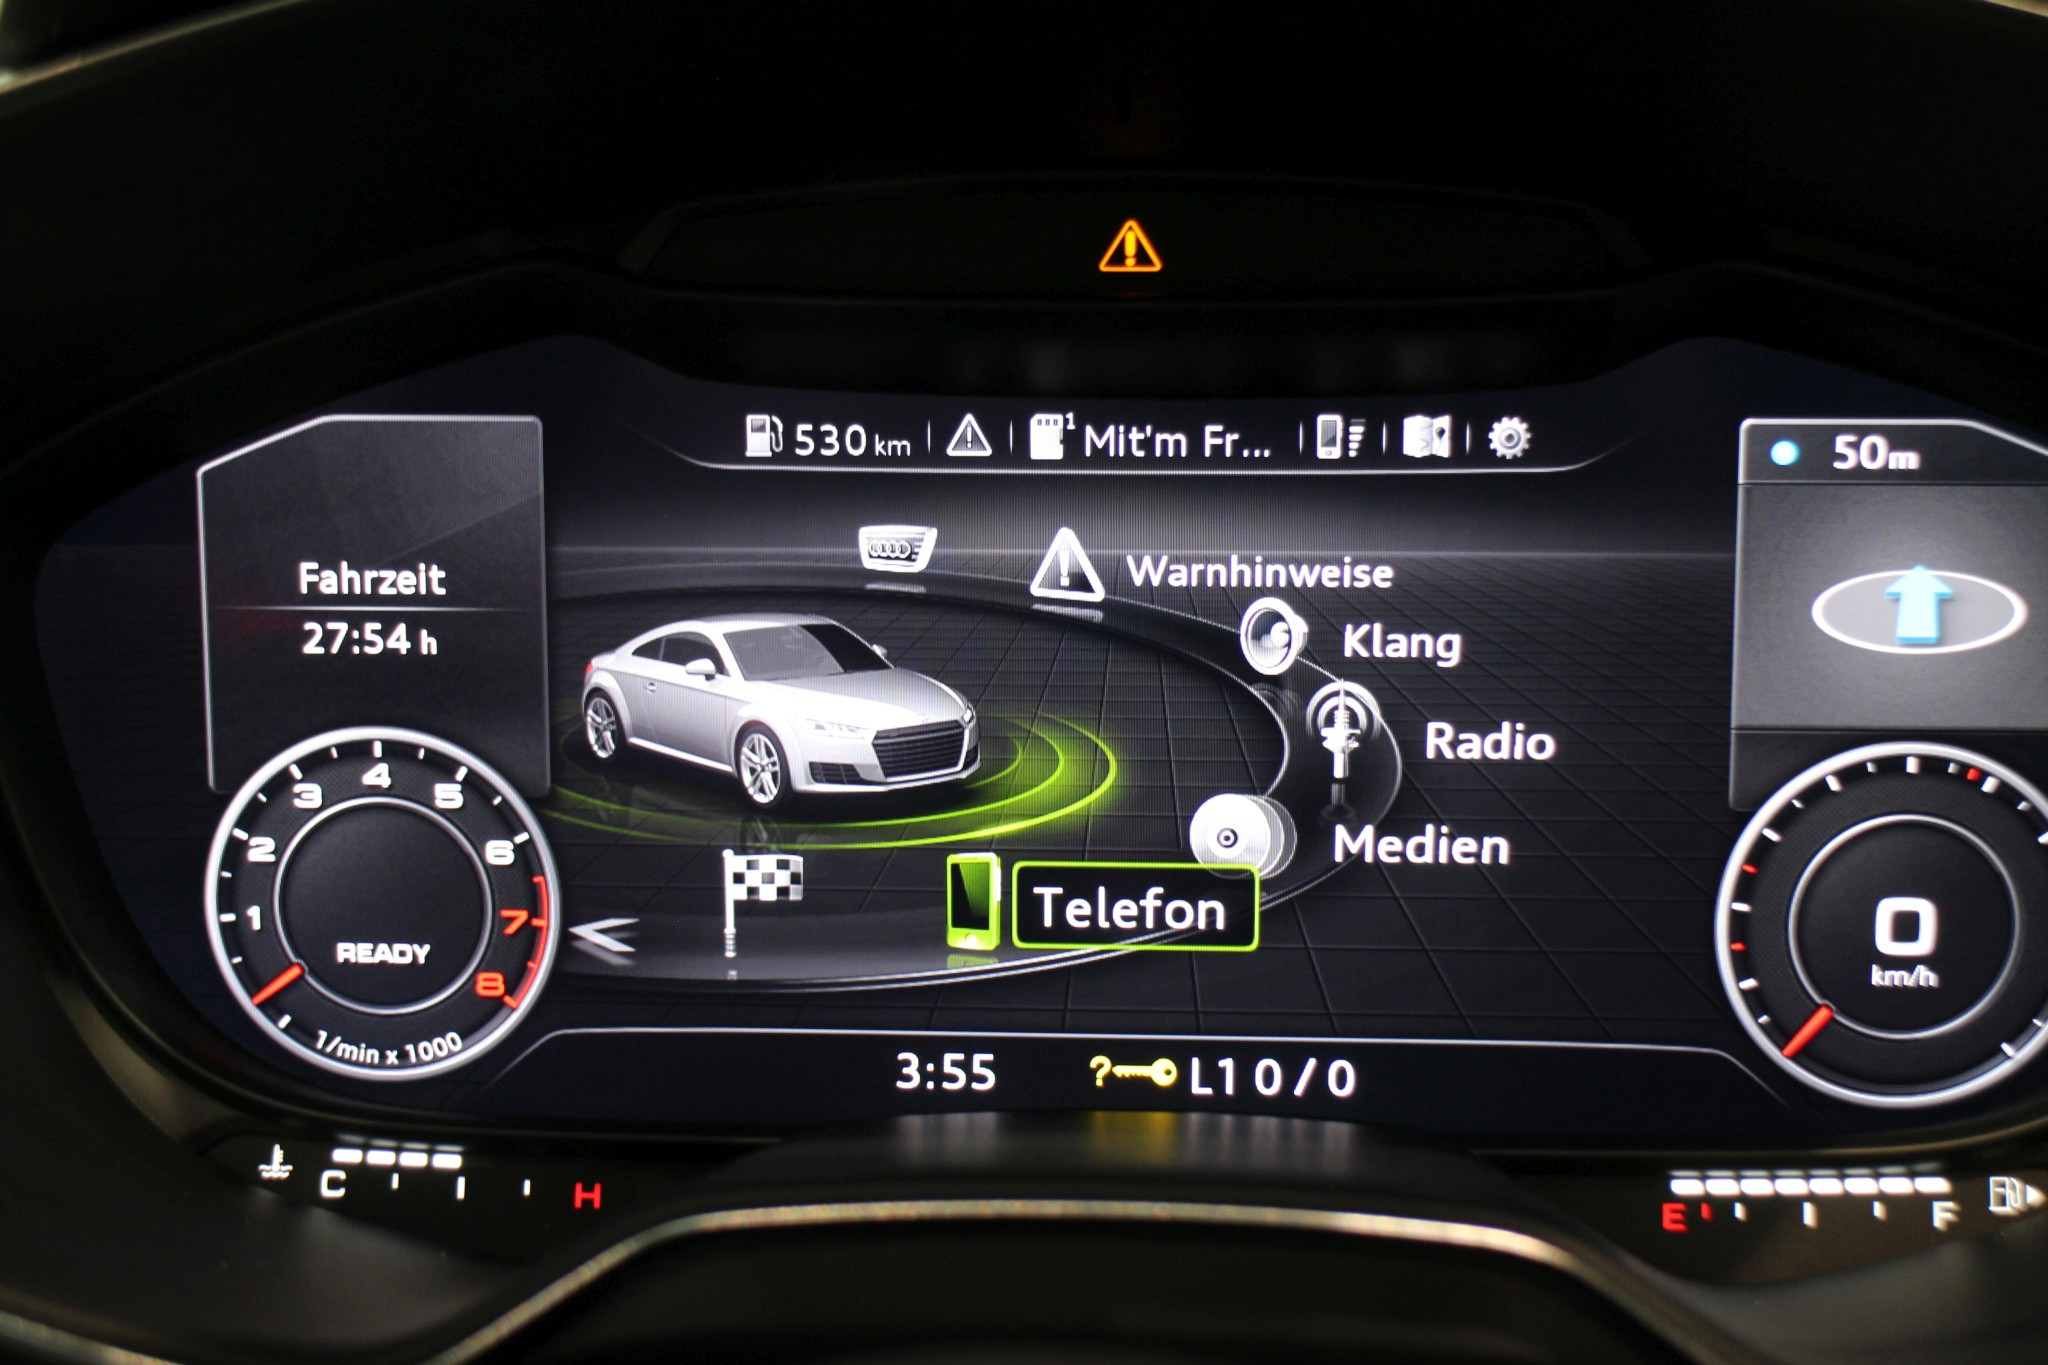 C++ vs  Python for Automotive Software - Self-Driving Cars